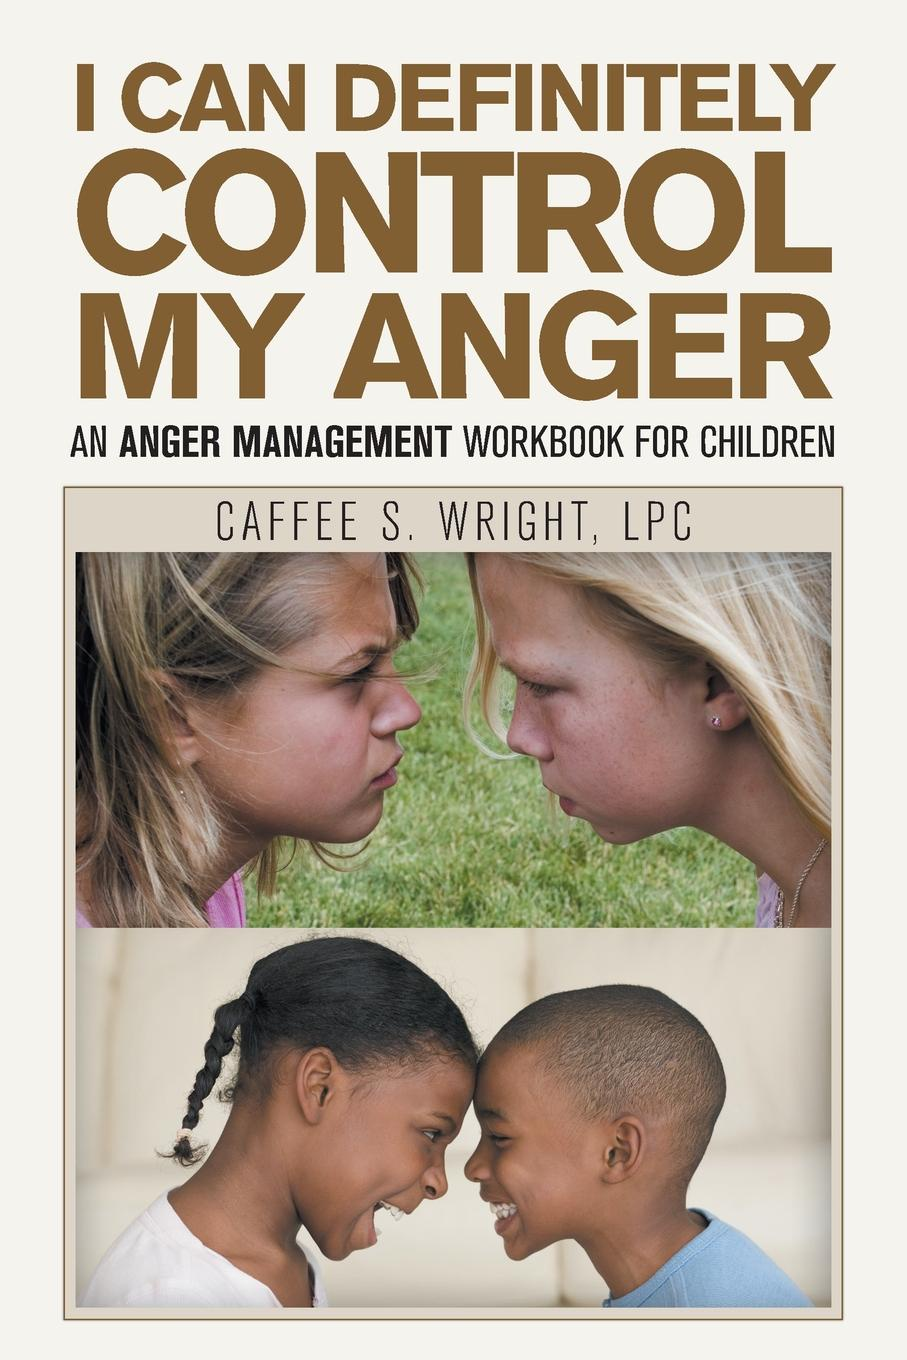 Caffee S. Wright LPC I Can Definitely Control My Anger. An Anger Management Workbook for Children acorna s children second wave